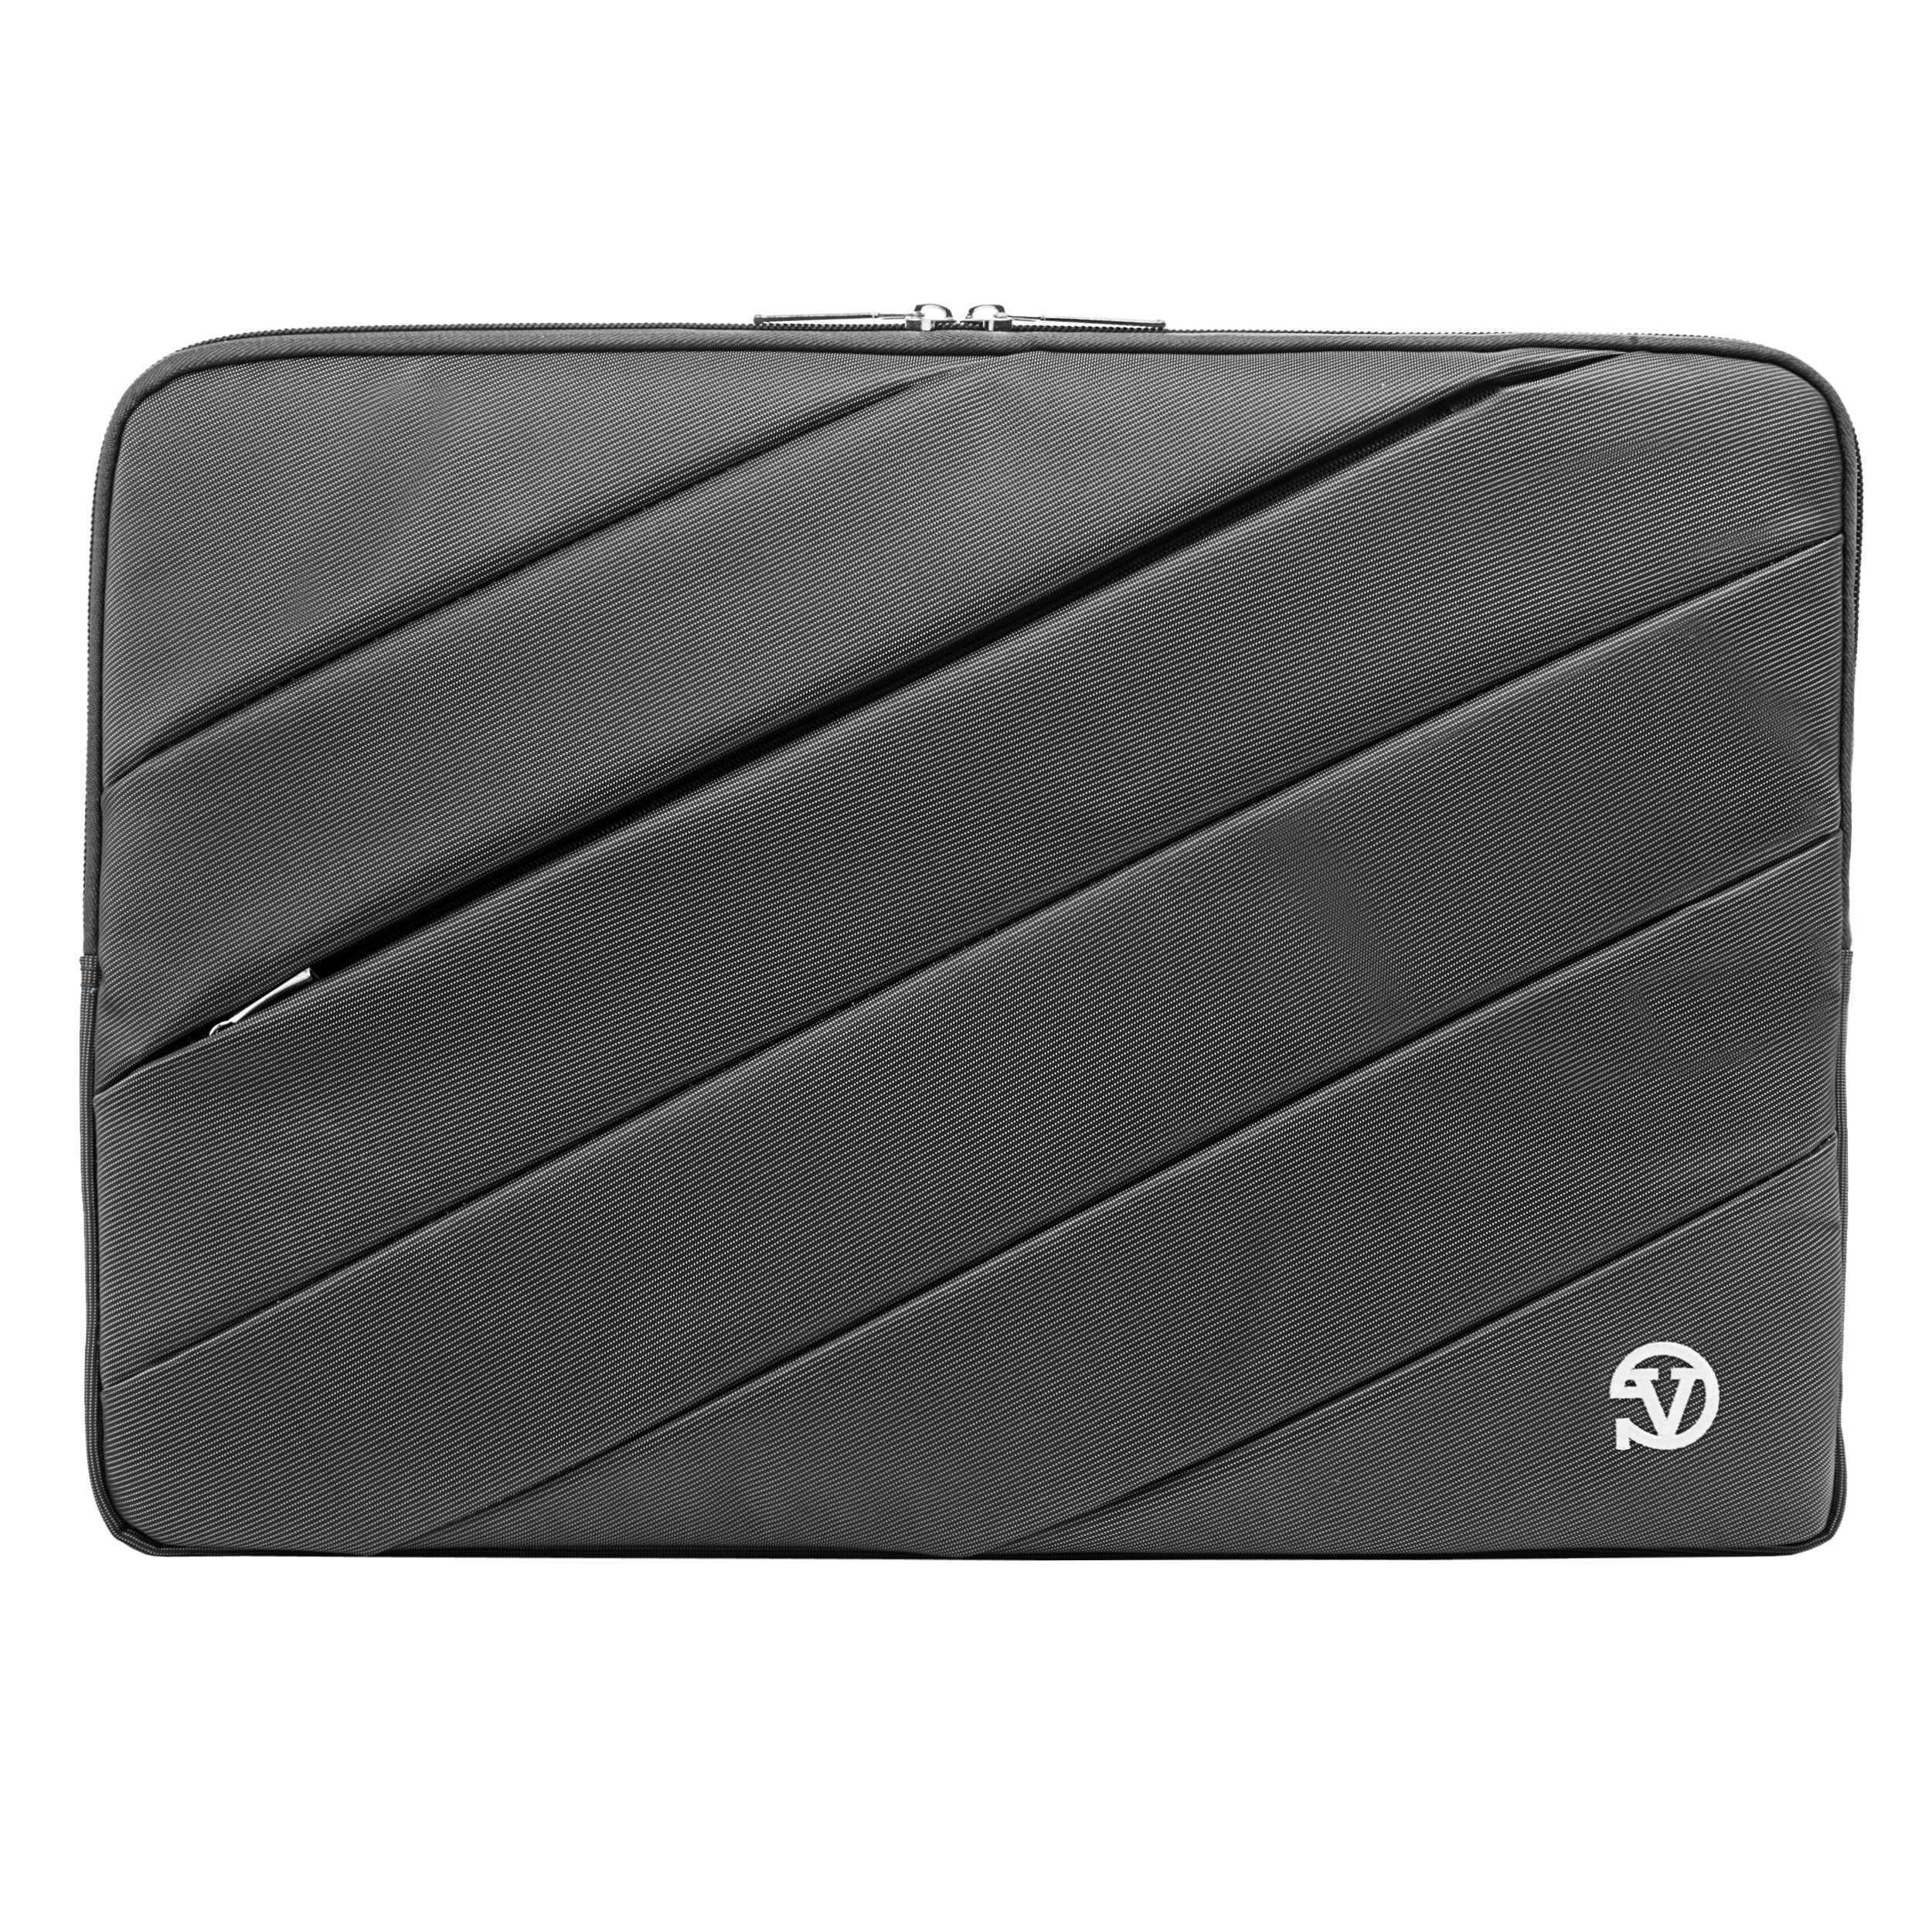 VANGODDY Jam Padded Carrying Sleeve fits Laptops / Notebooks / Ultrabook up to 12, 12.1, 13, 13.3 inches [Samsung, HP, Asus, Acer, Apple, Toshiba, Lenovo, etc.]